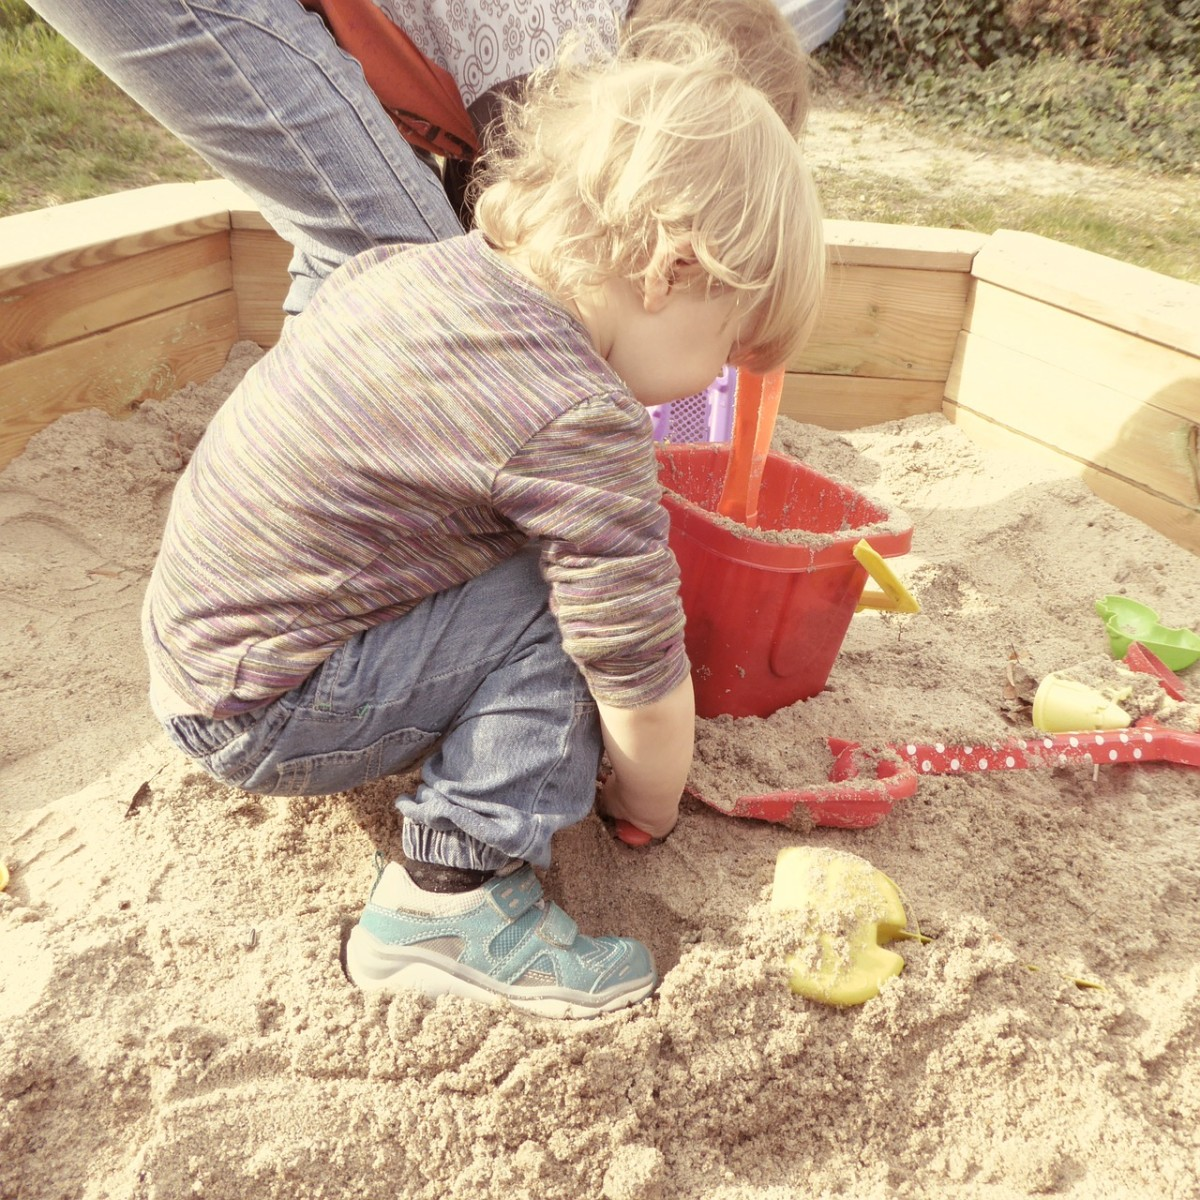 Playing in the sand teaches many pre-math and pre-science concepts.